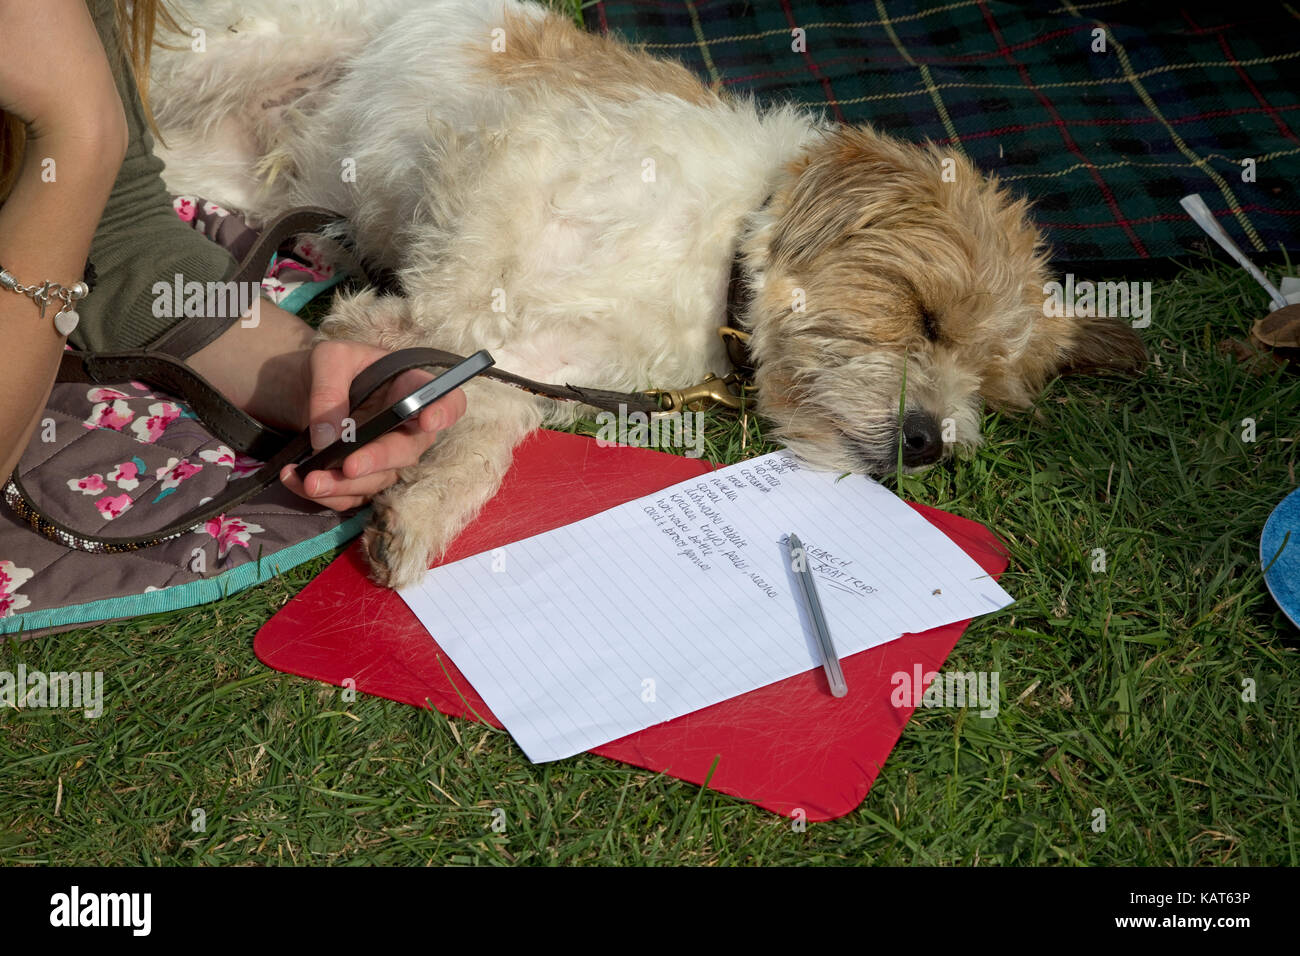 Teenagers hand holding mobile phone sleeping terrier and to do list Cotswolds UK - Stock Image